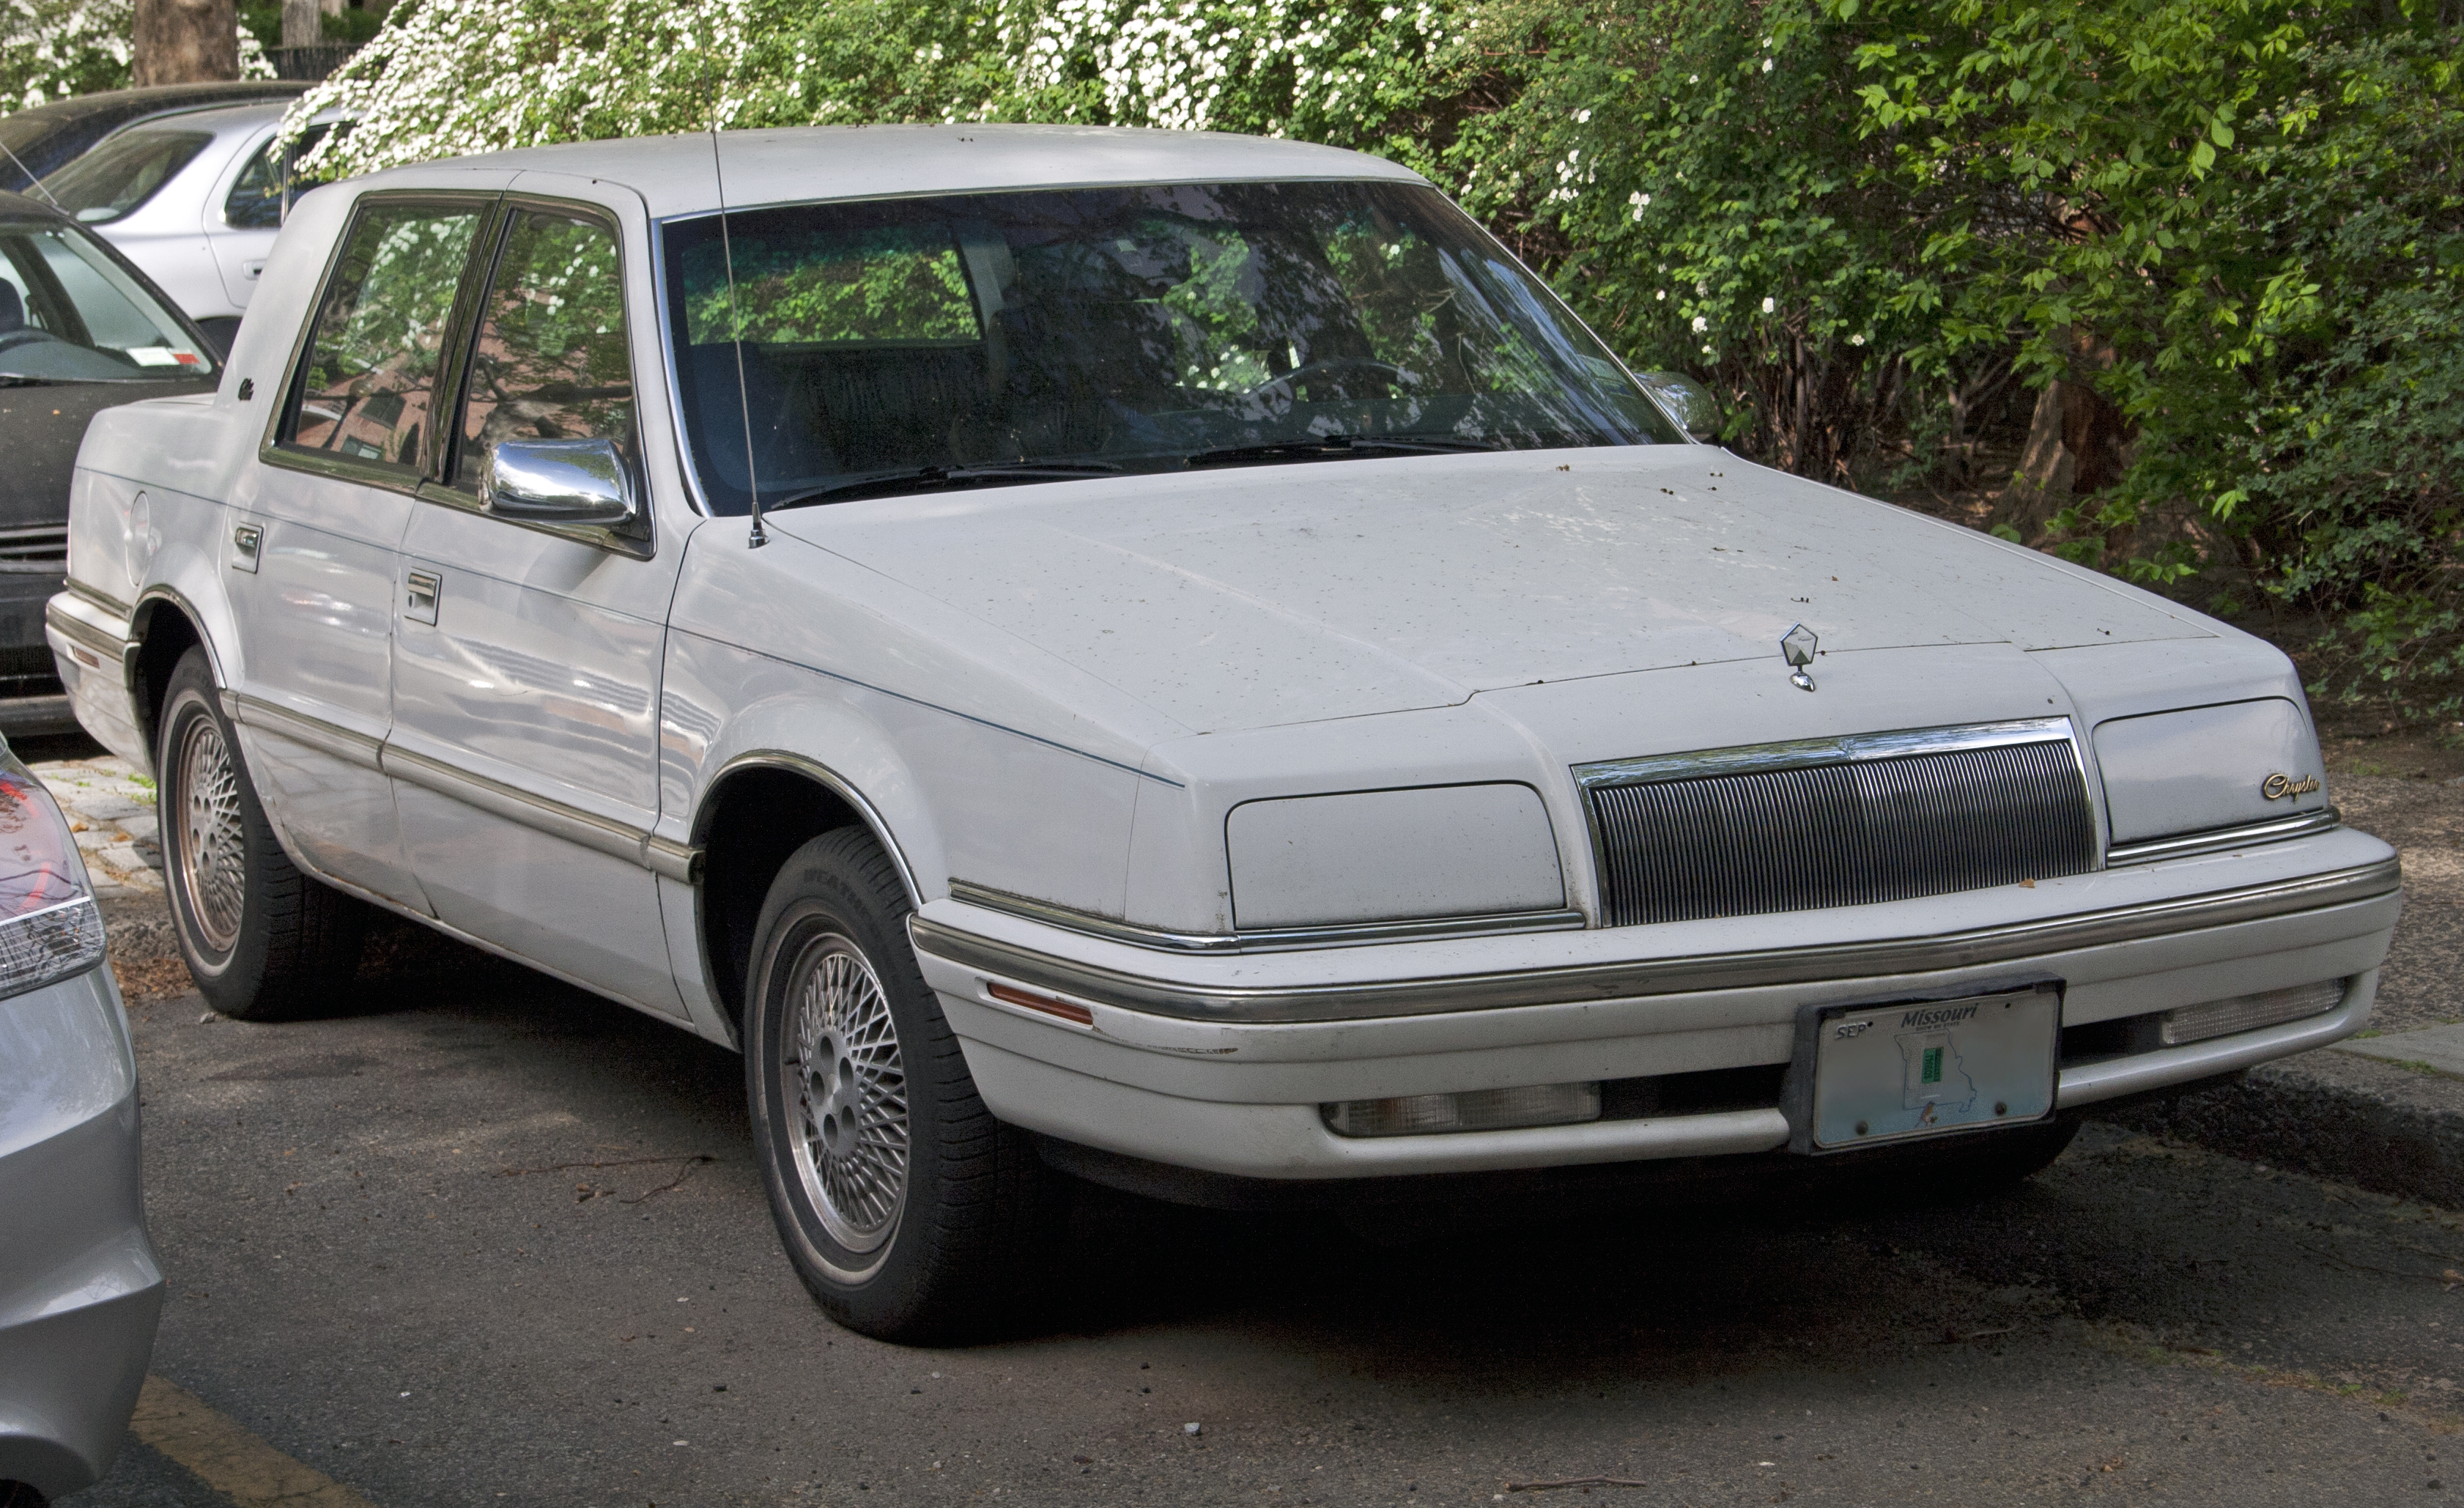 file 1992 or 1993 chrysler new yorker